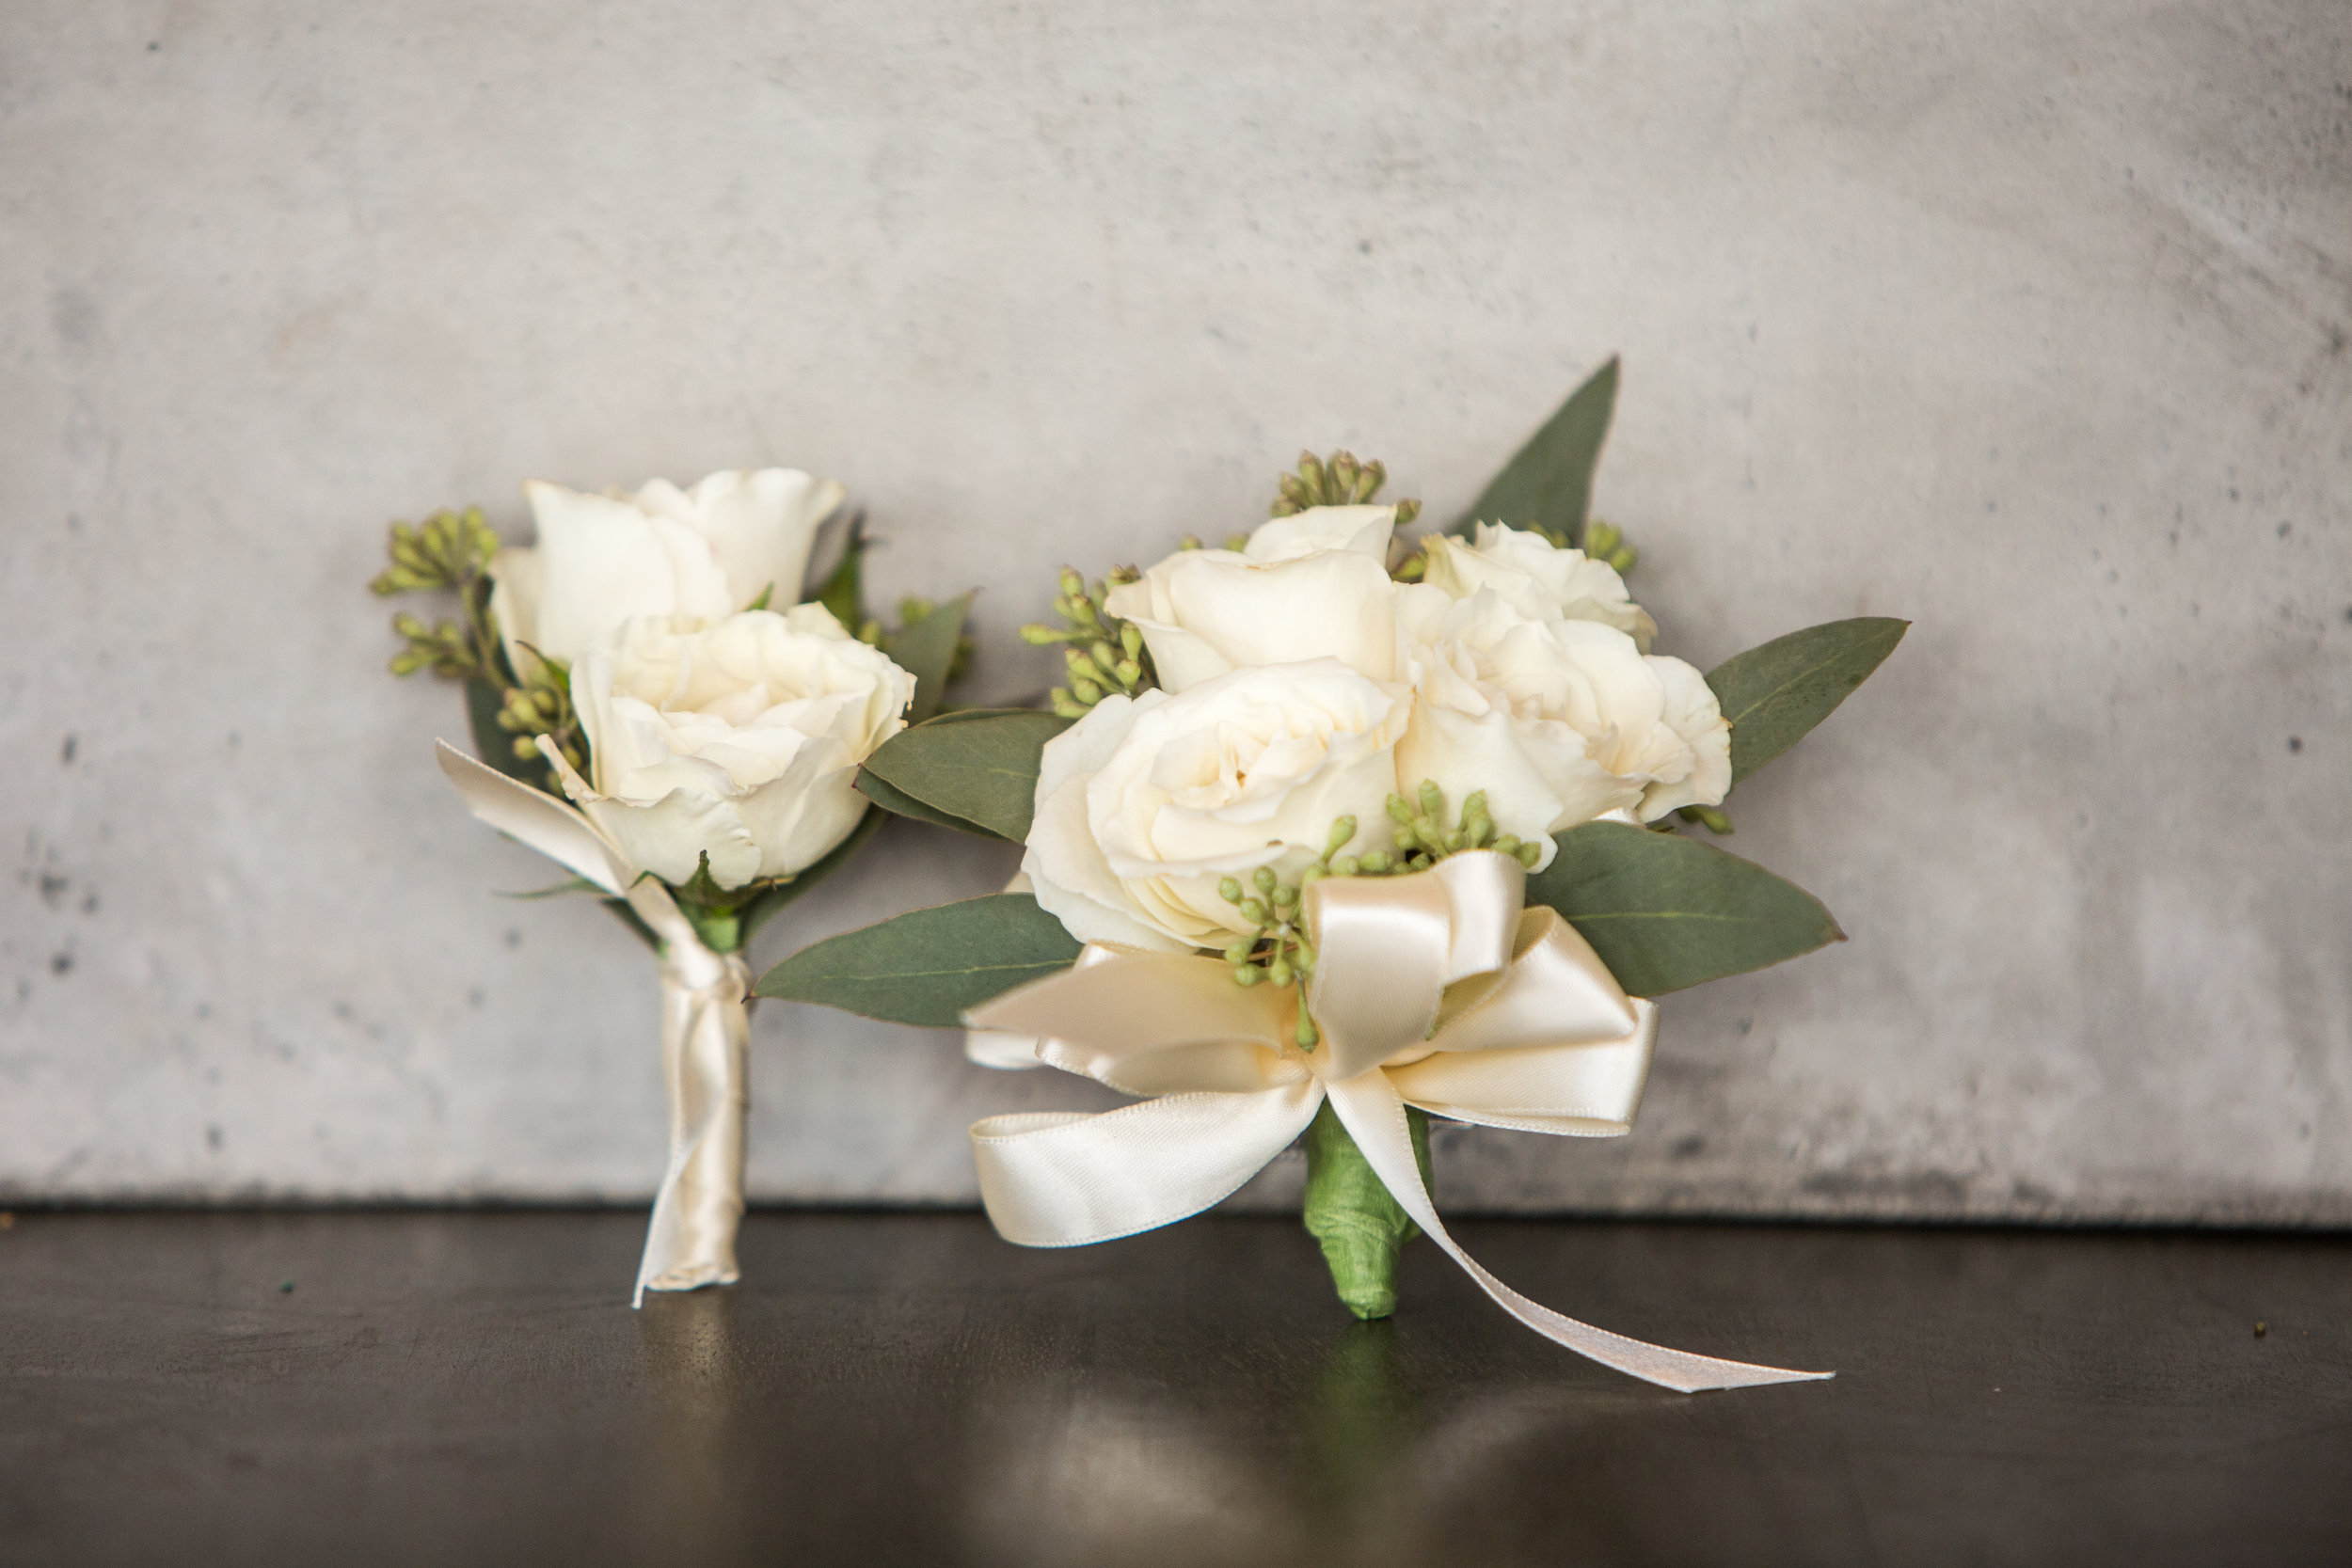 Homecoming Corsage-Boutonniere duo in white/ivory $50 (Sold Separately - Corsage $35, Boutonniere $20)